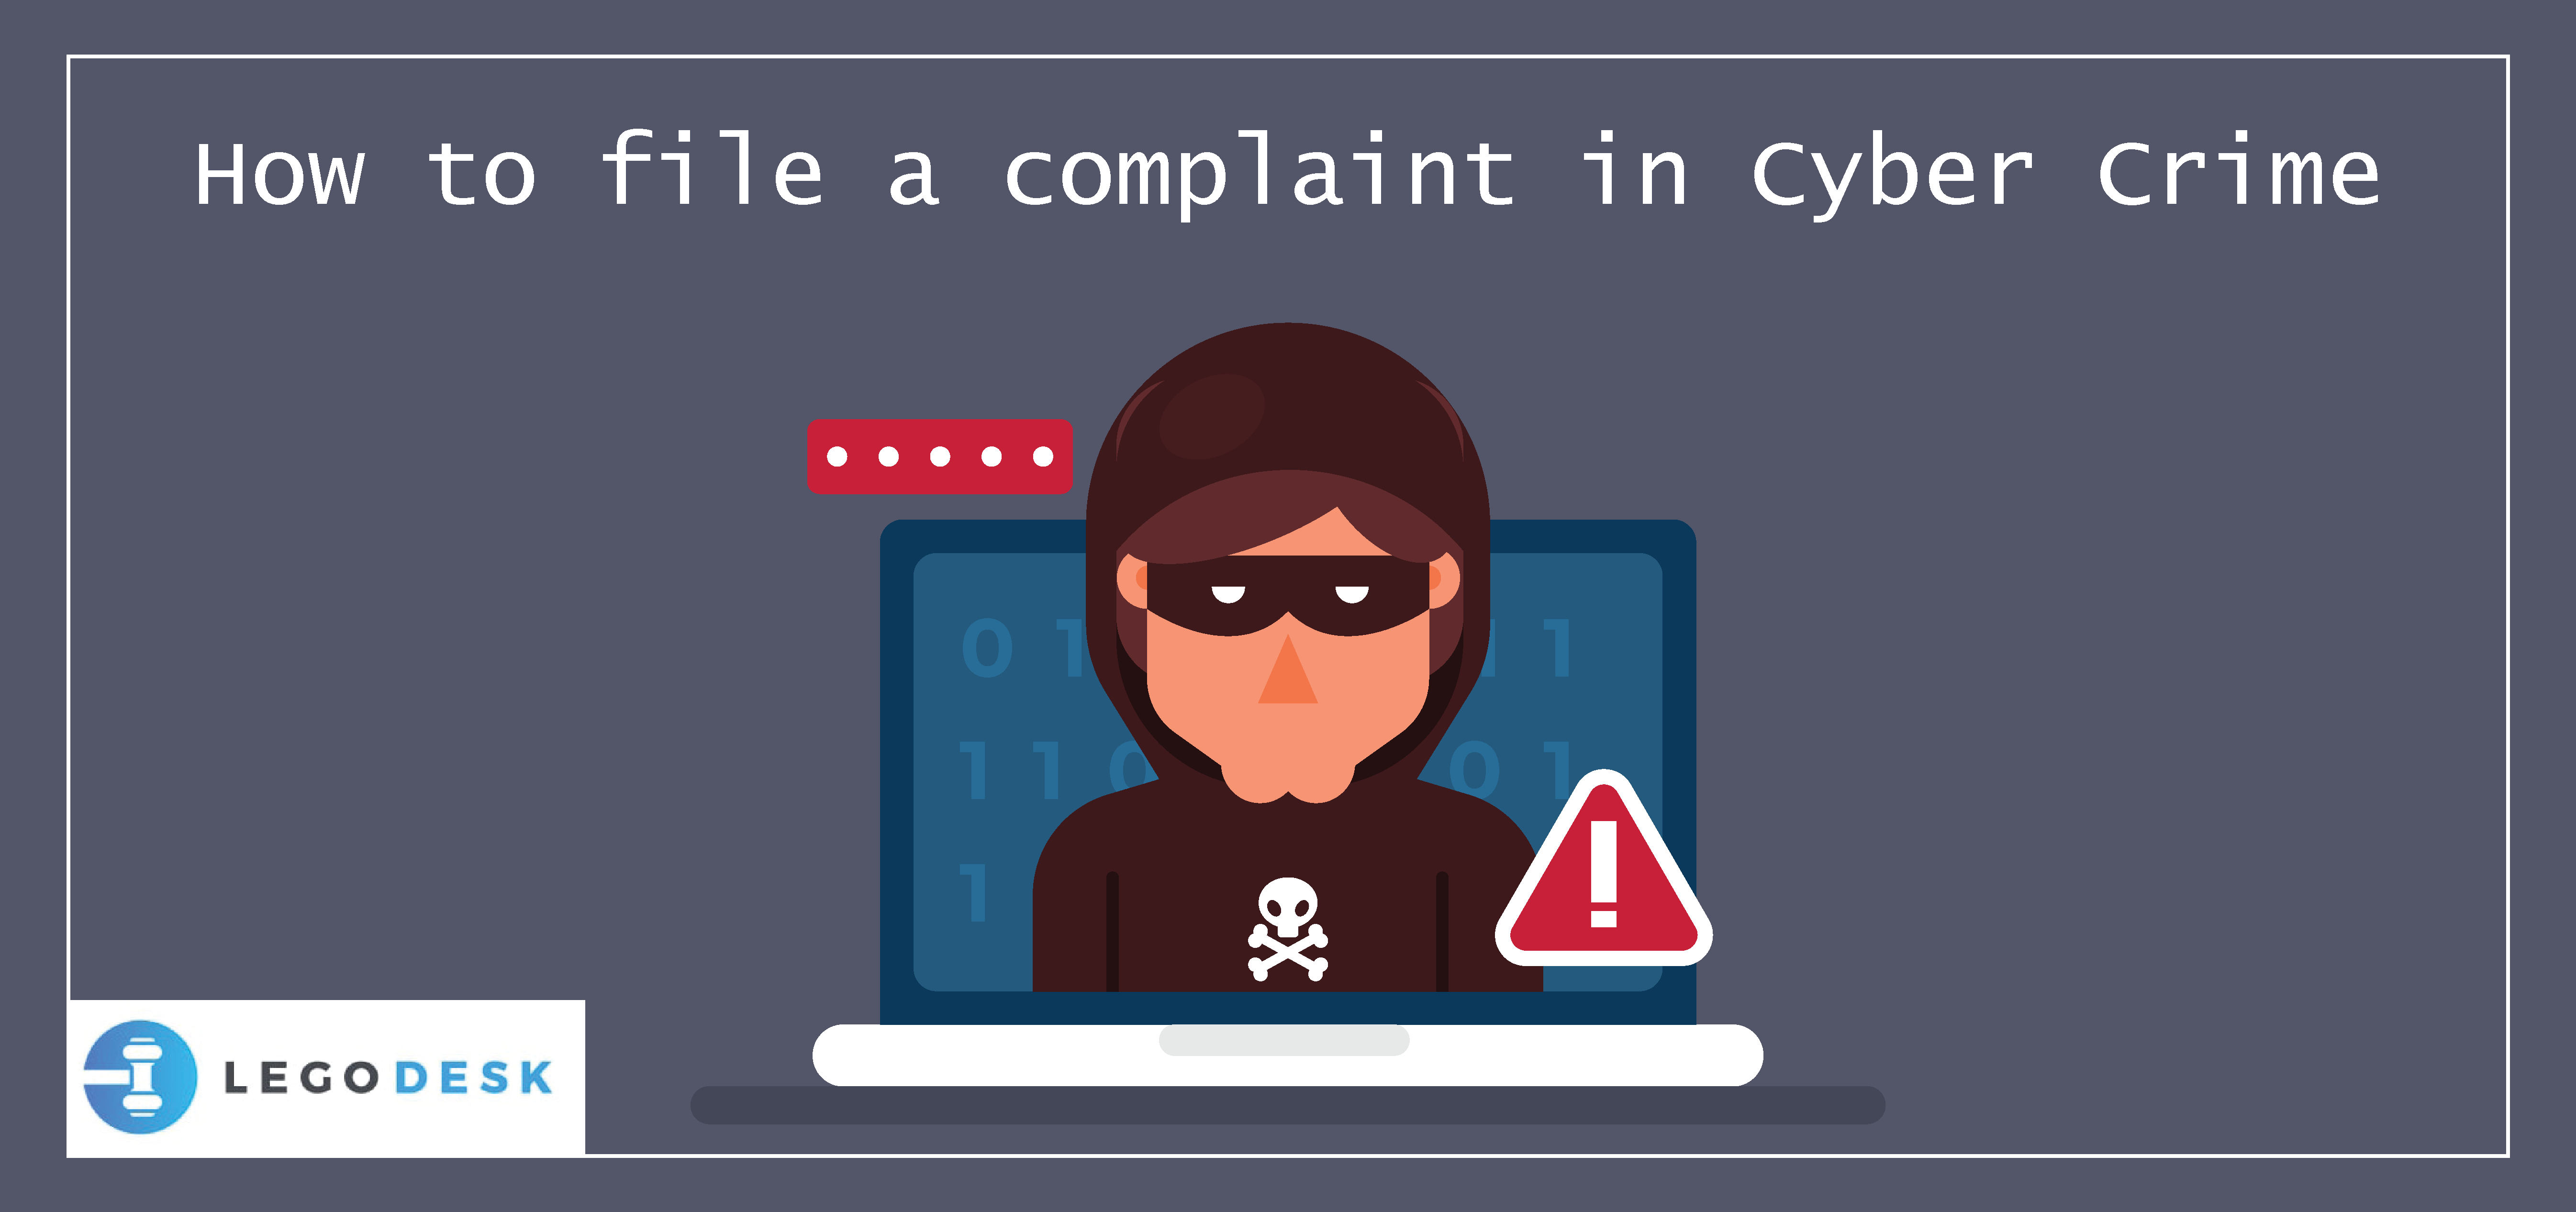 How to file a complaint in Cyber Crime